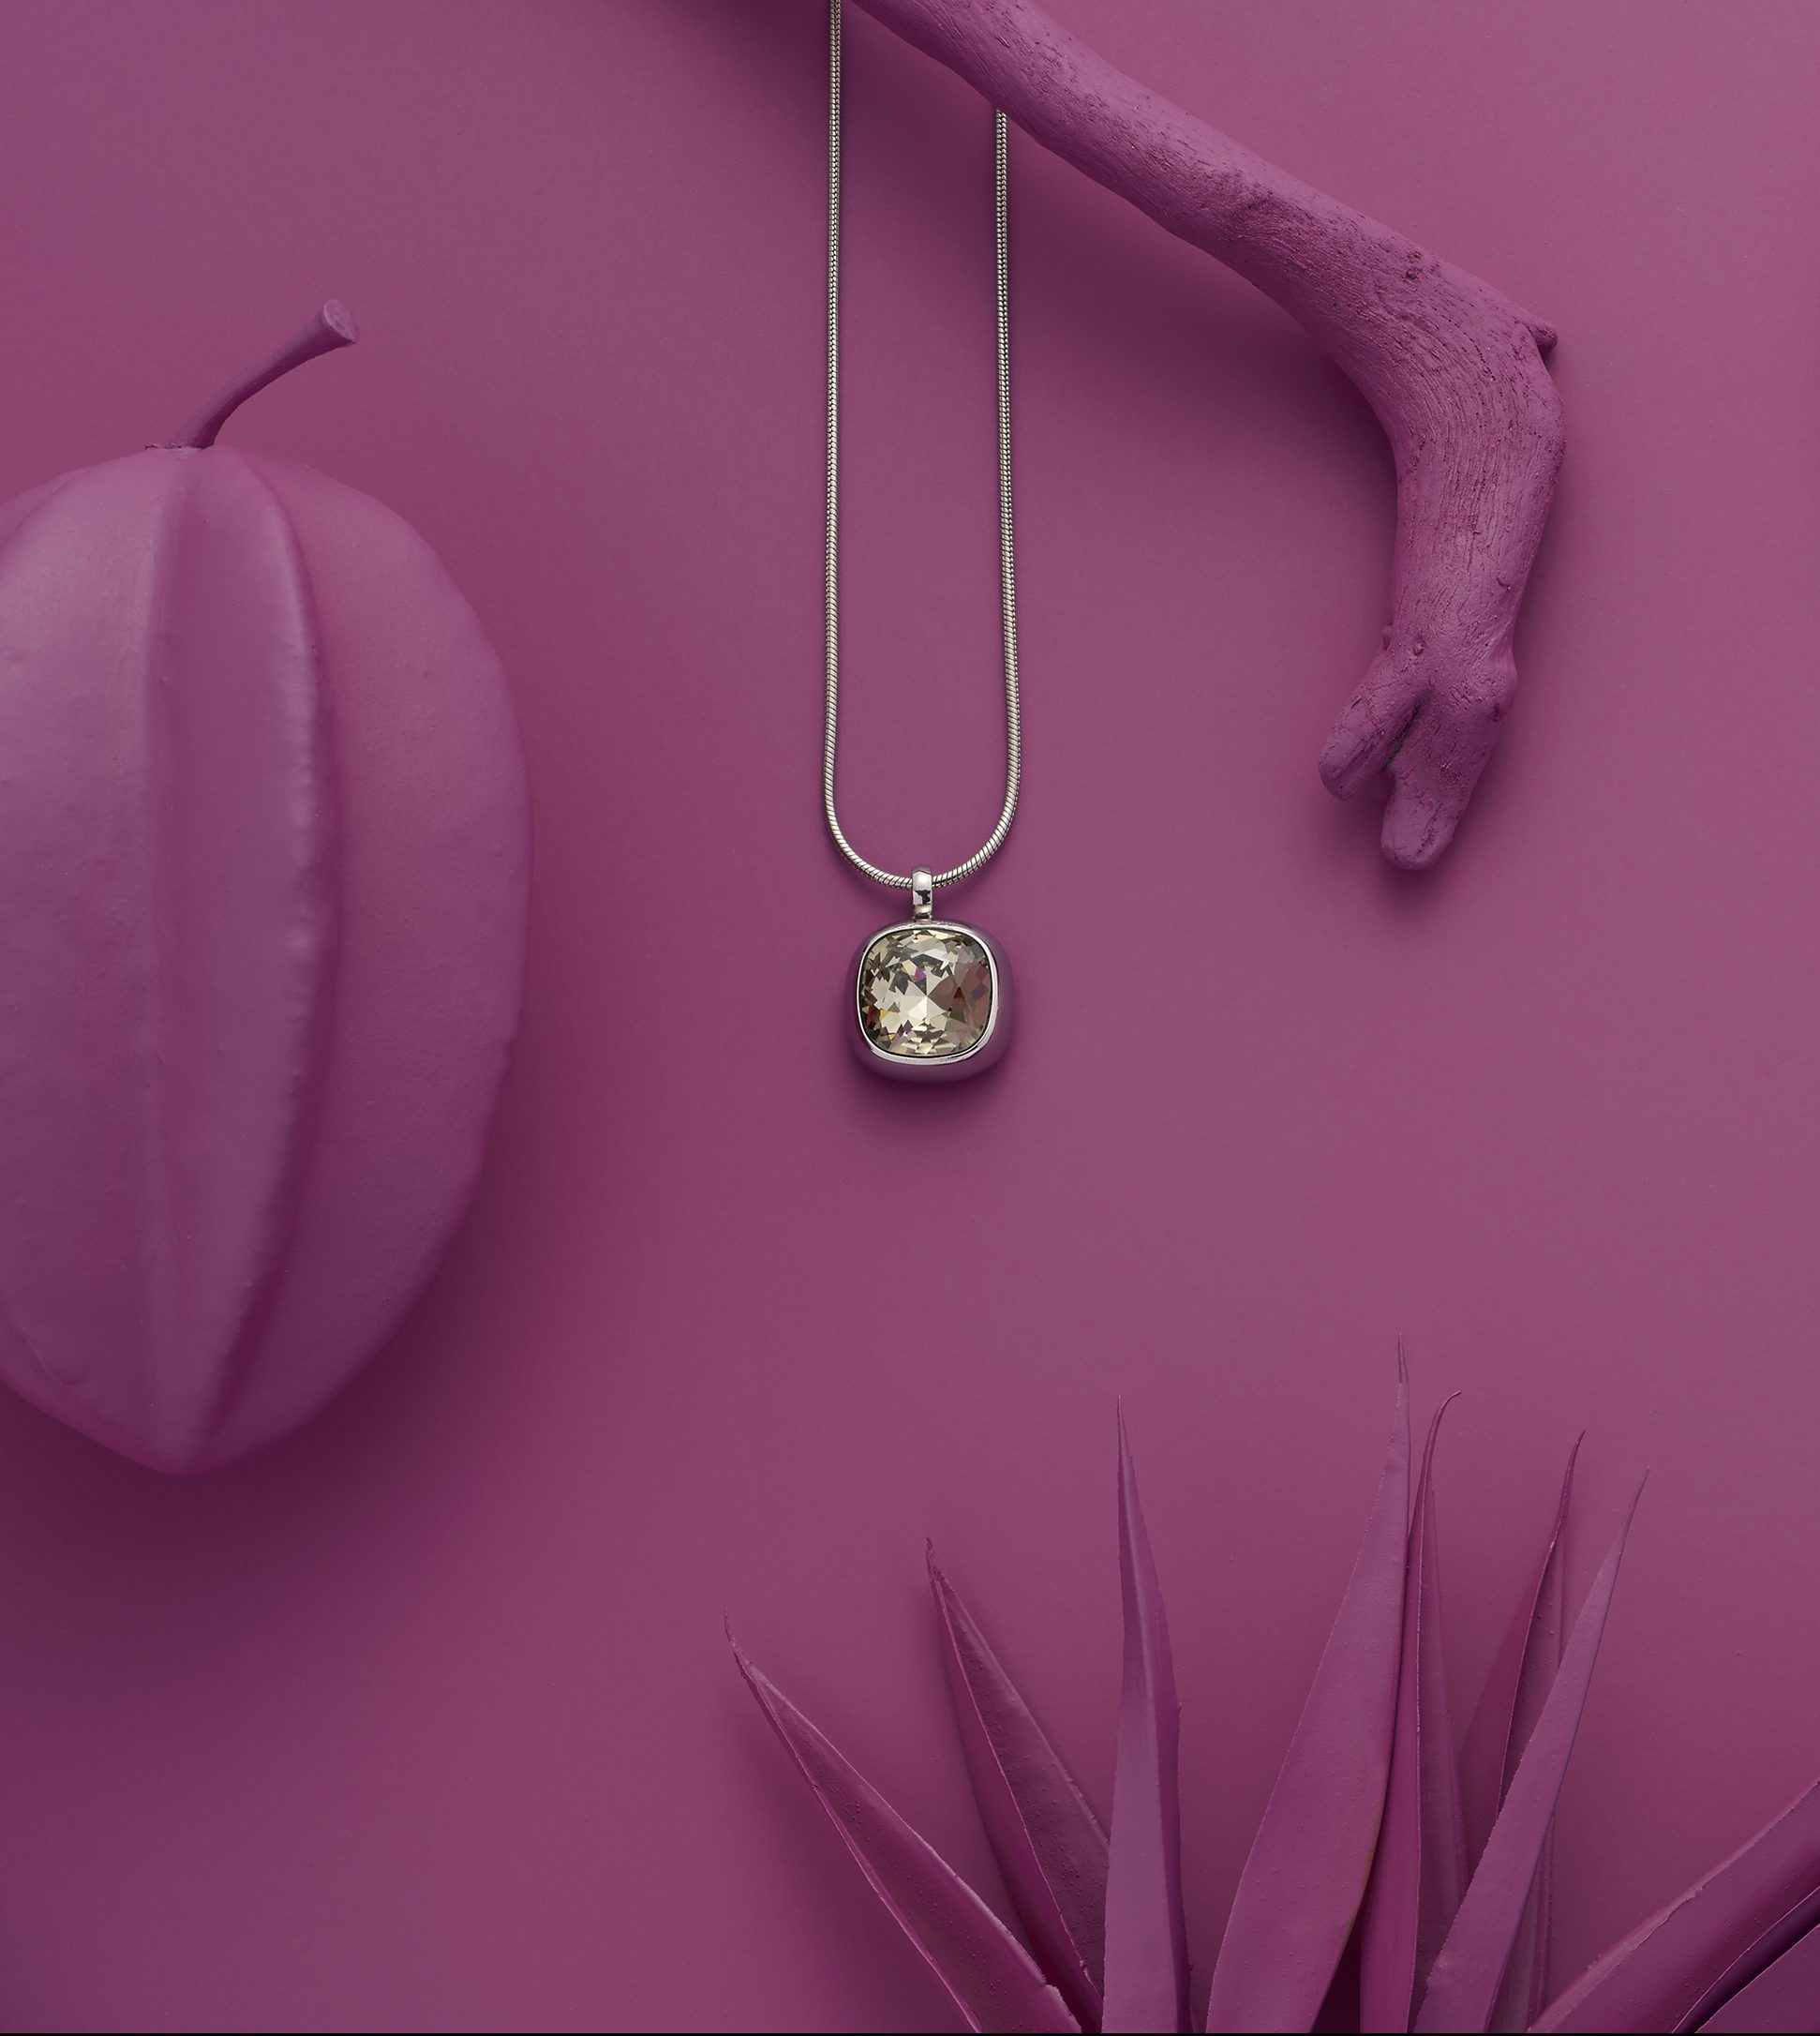 collection fond fushia, collier perles 65€, bague coquillage 39€, collier strass 45€, Energetix